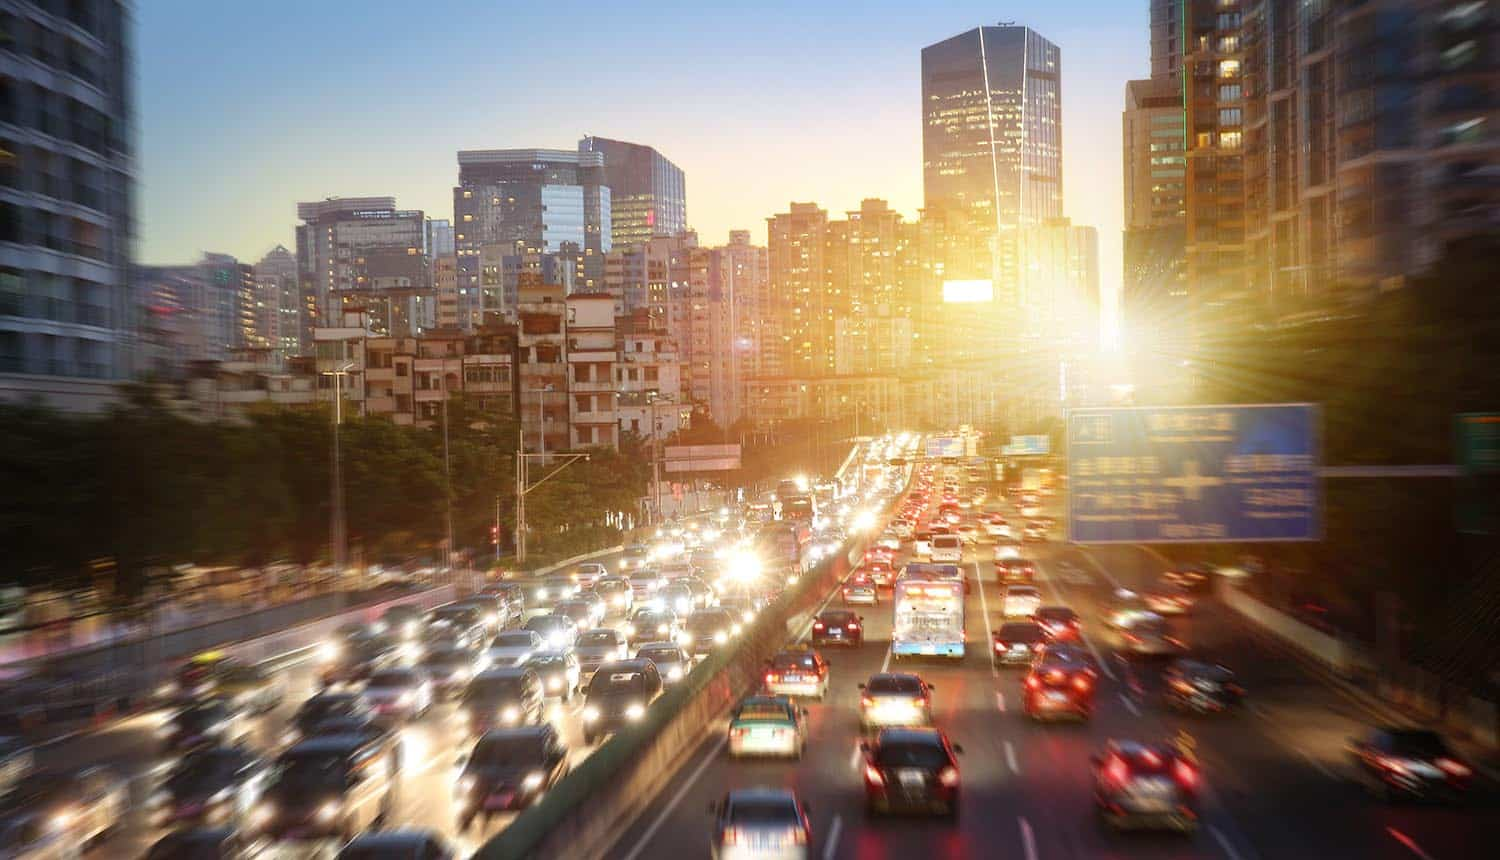 Cars on highway road in busy city showing cybersecurity regulations implication on autonomous vehicles